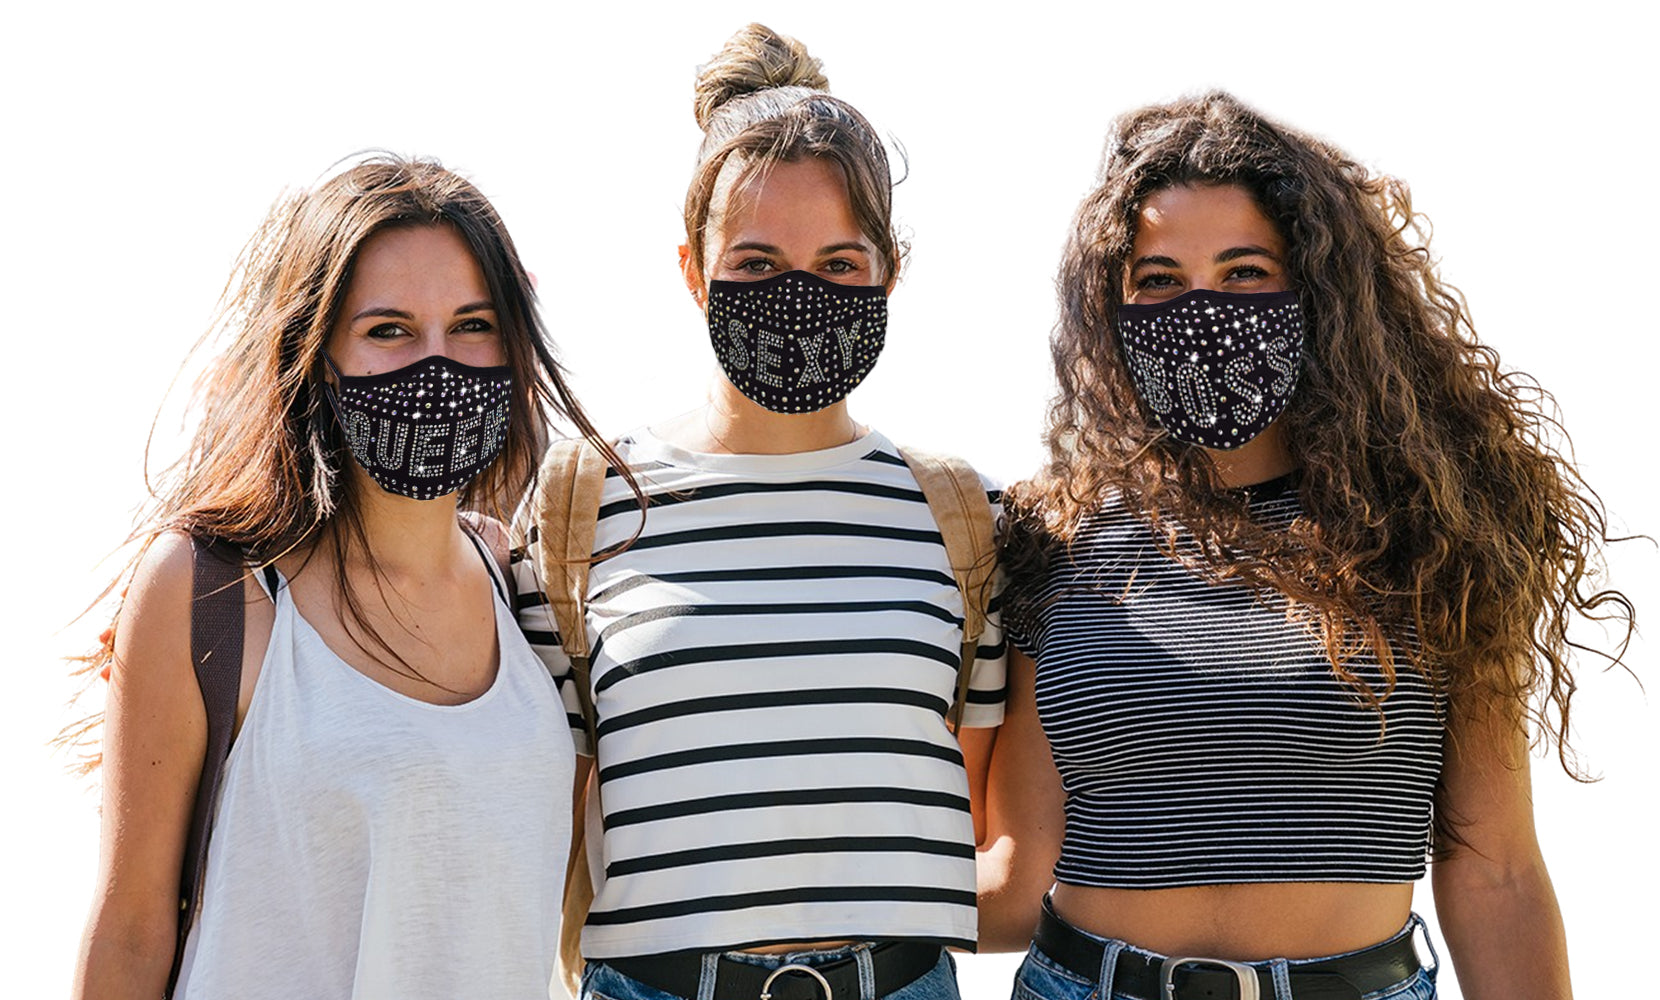 3-Pack: All the Blings Rhinestone Cotton Face Mask